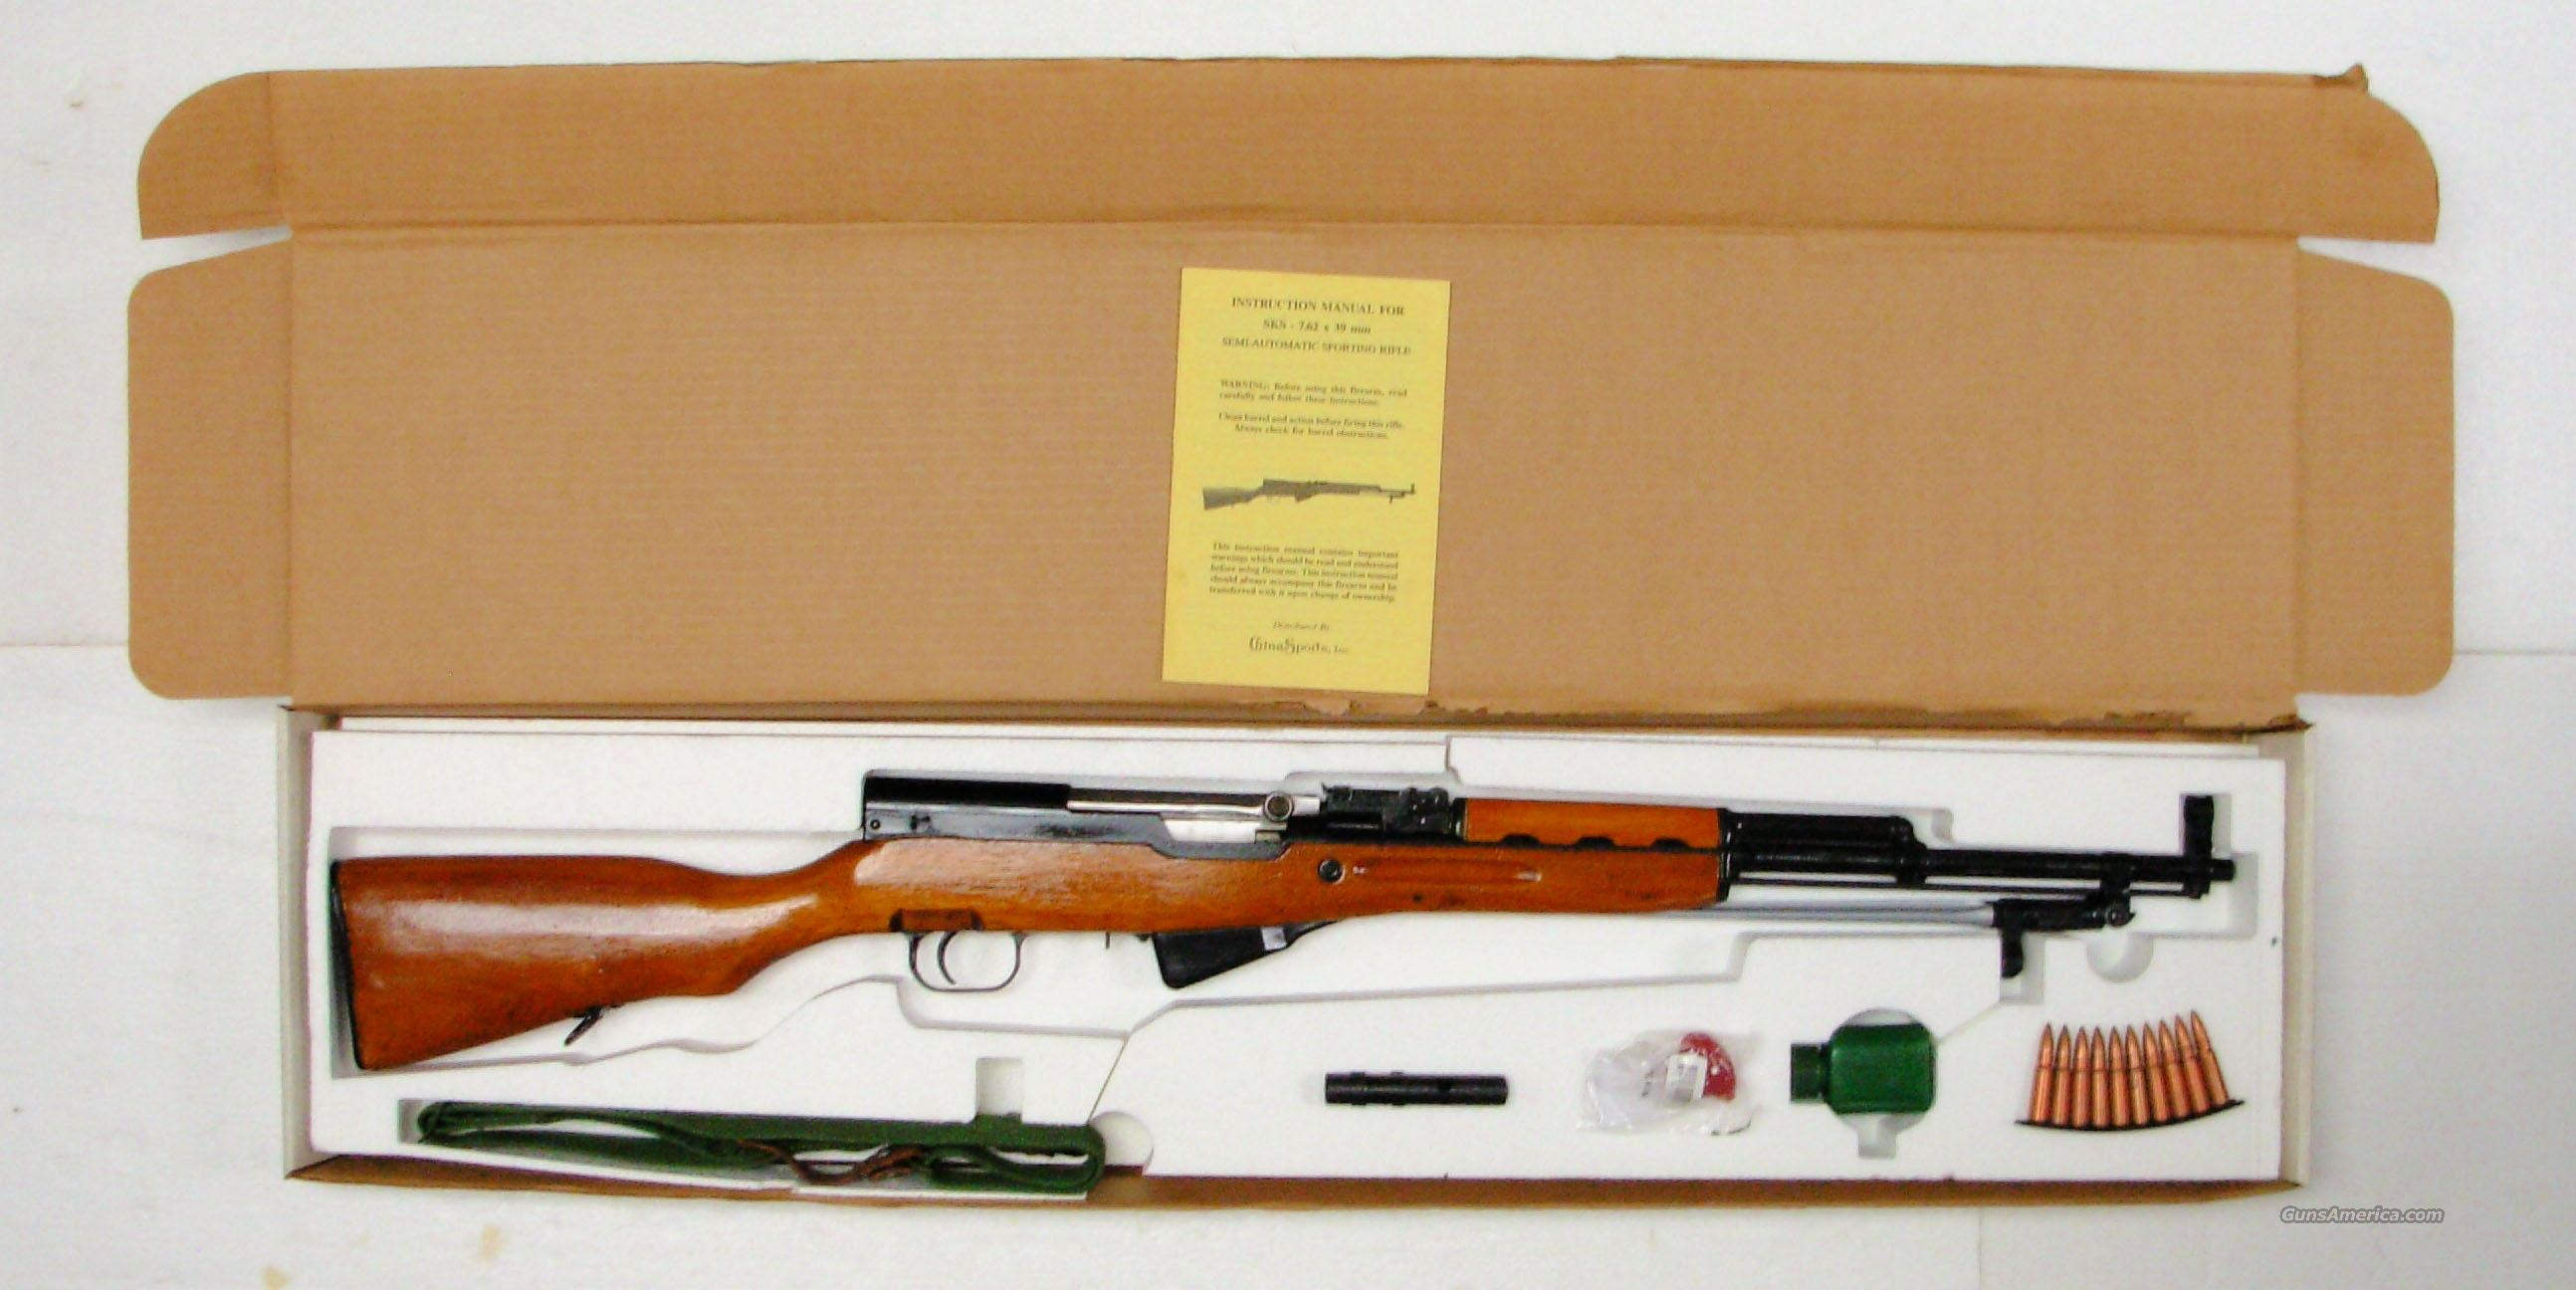 VINTAGE 1980's *** ORIGINAL SKS PACKAGE *** $499.00 WITH FREE SHIPPING!!!  Guns > Rifles > Norinco Rifles